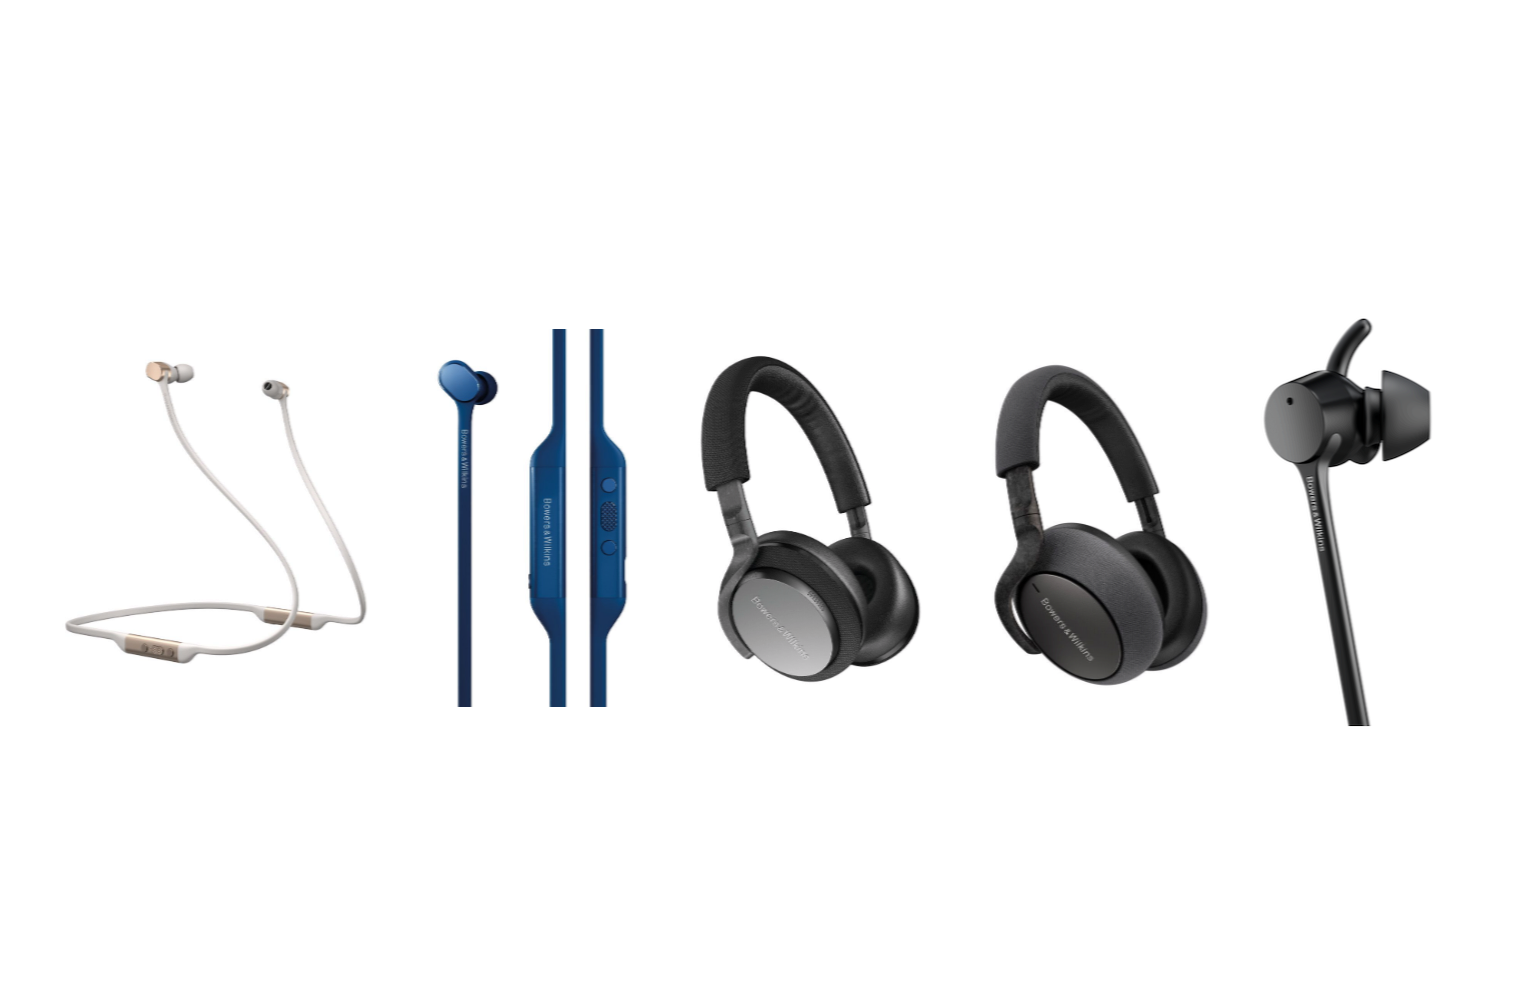 Bowers & Wilkins launches new P Series wireless headphones